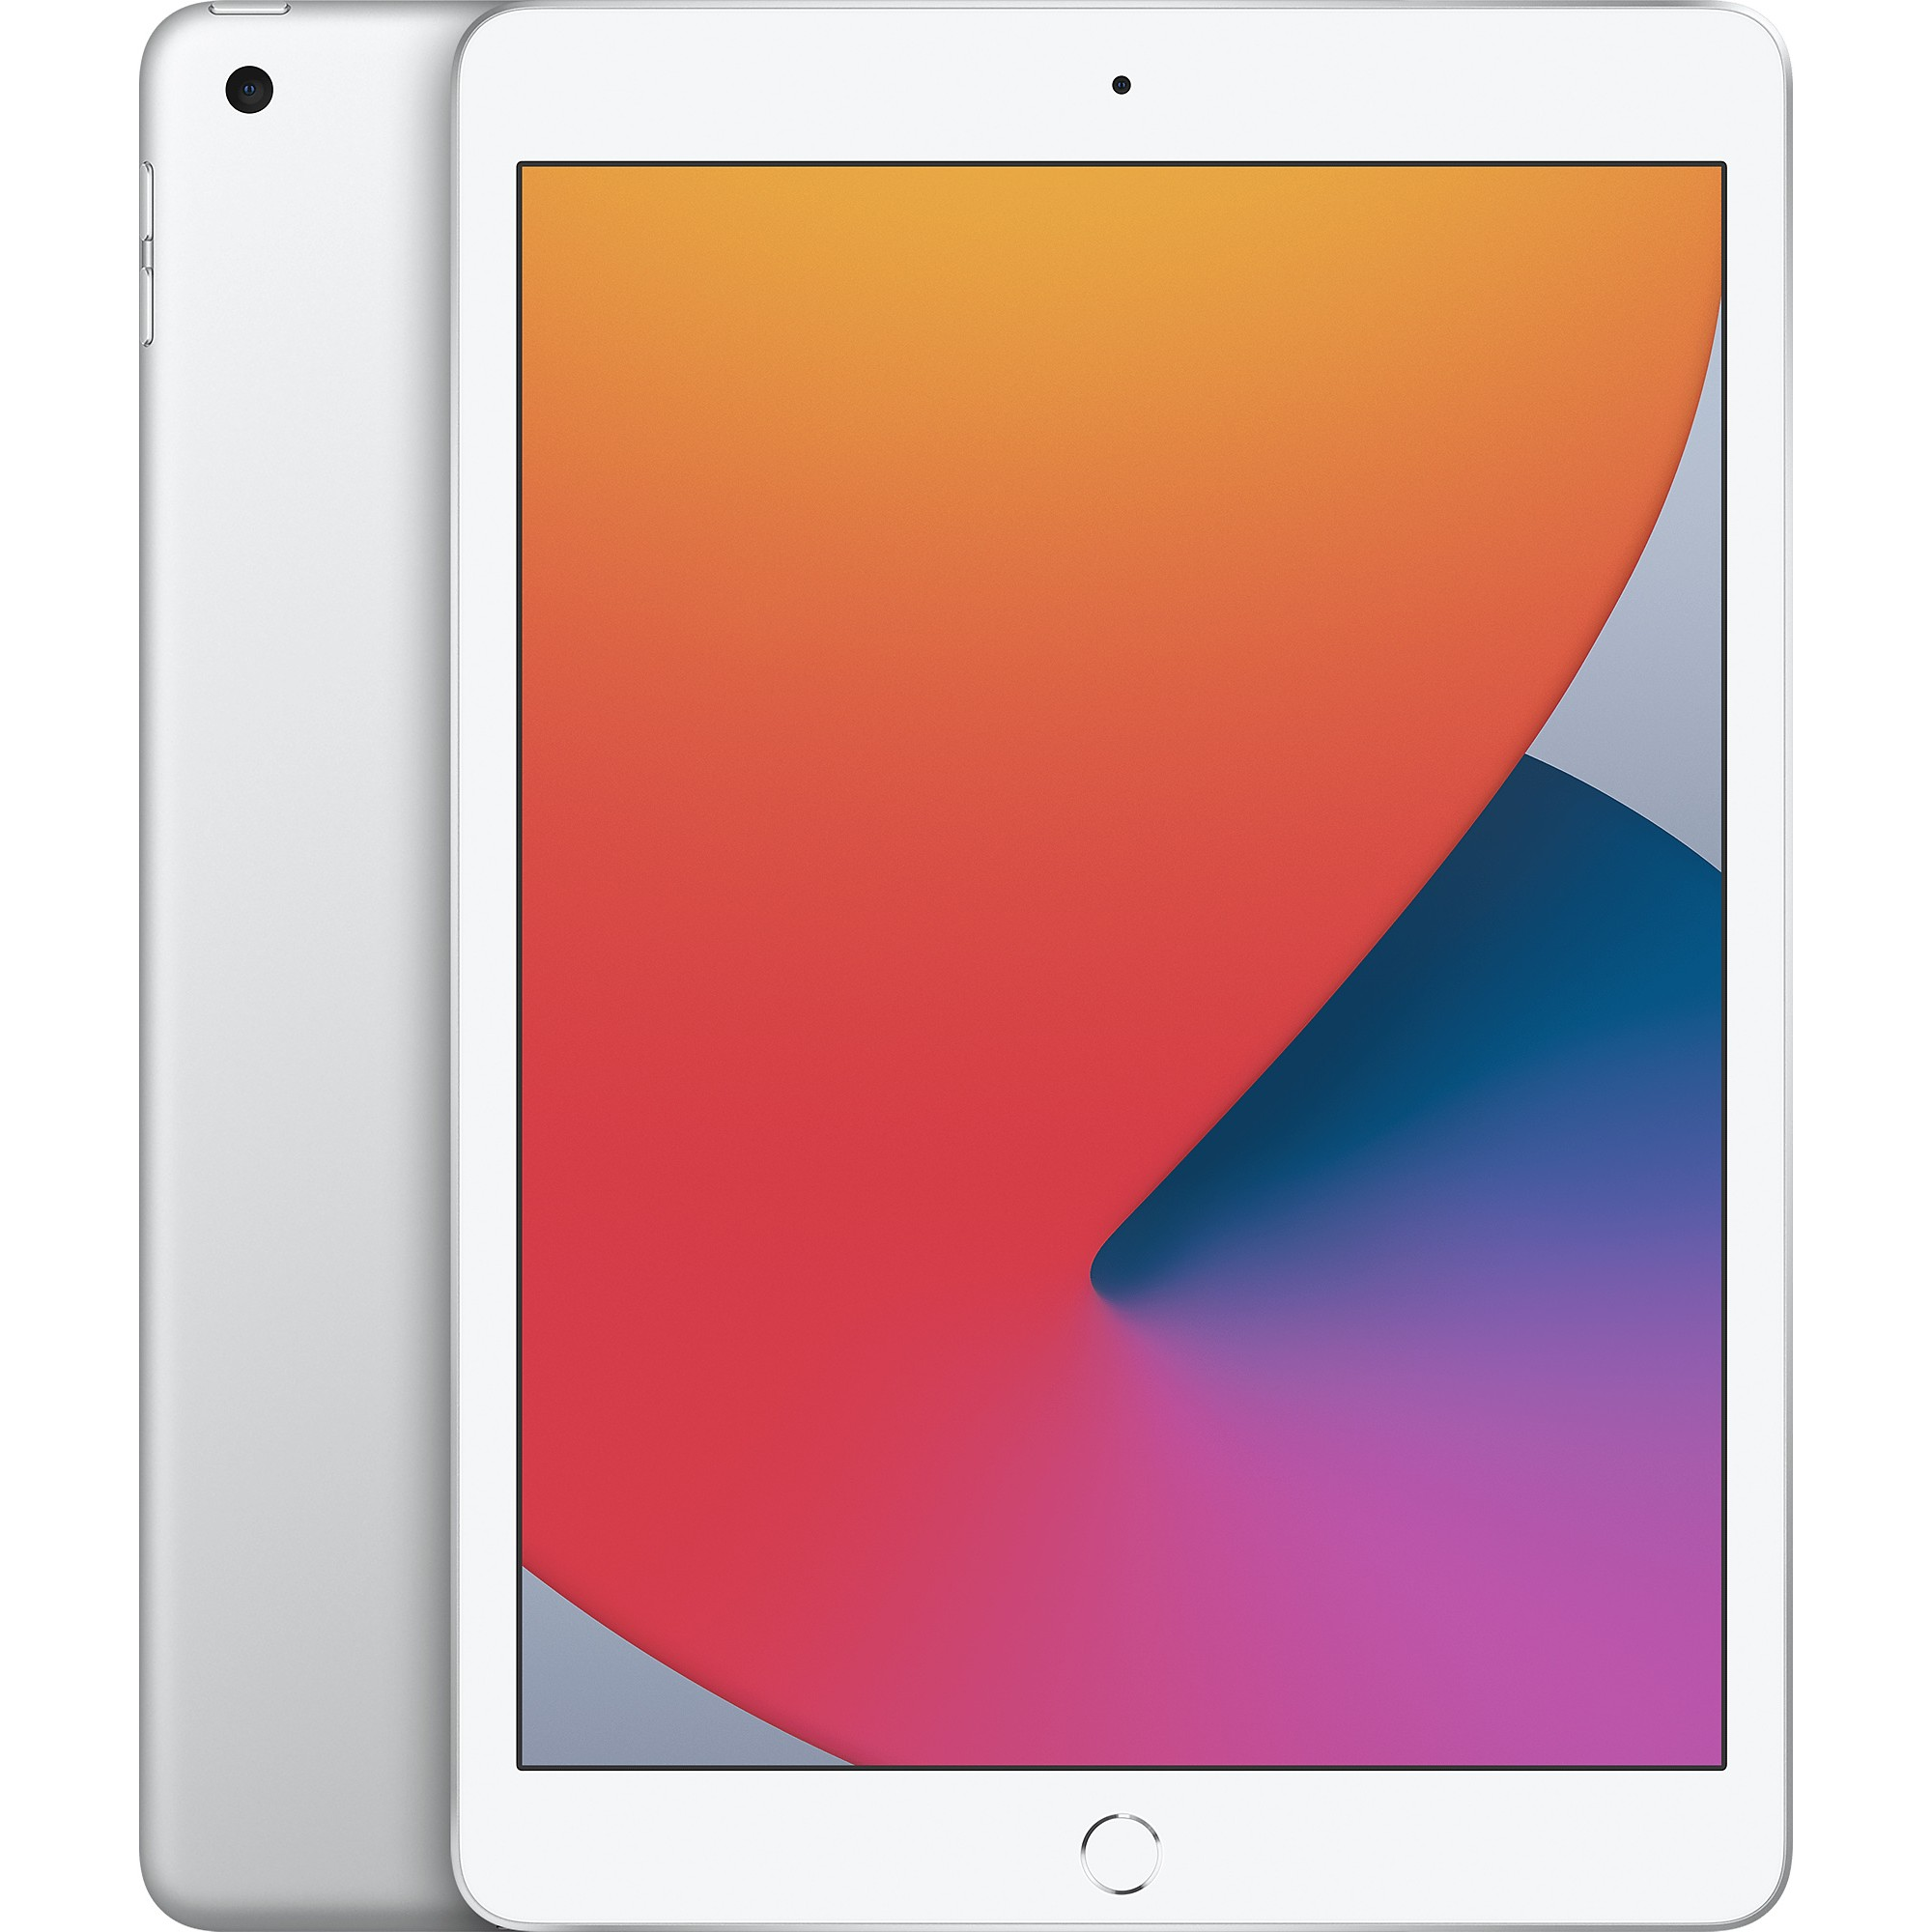 Apple iPad 10.2 (2020) 128GB Wifi with Screen Protector and Folding Case (Black) - White Silver